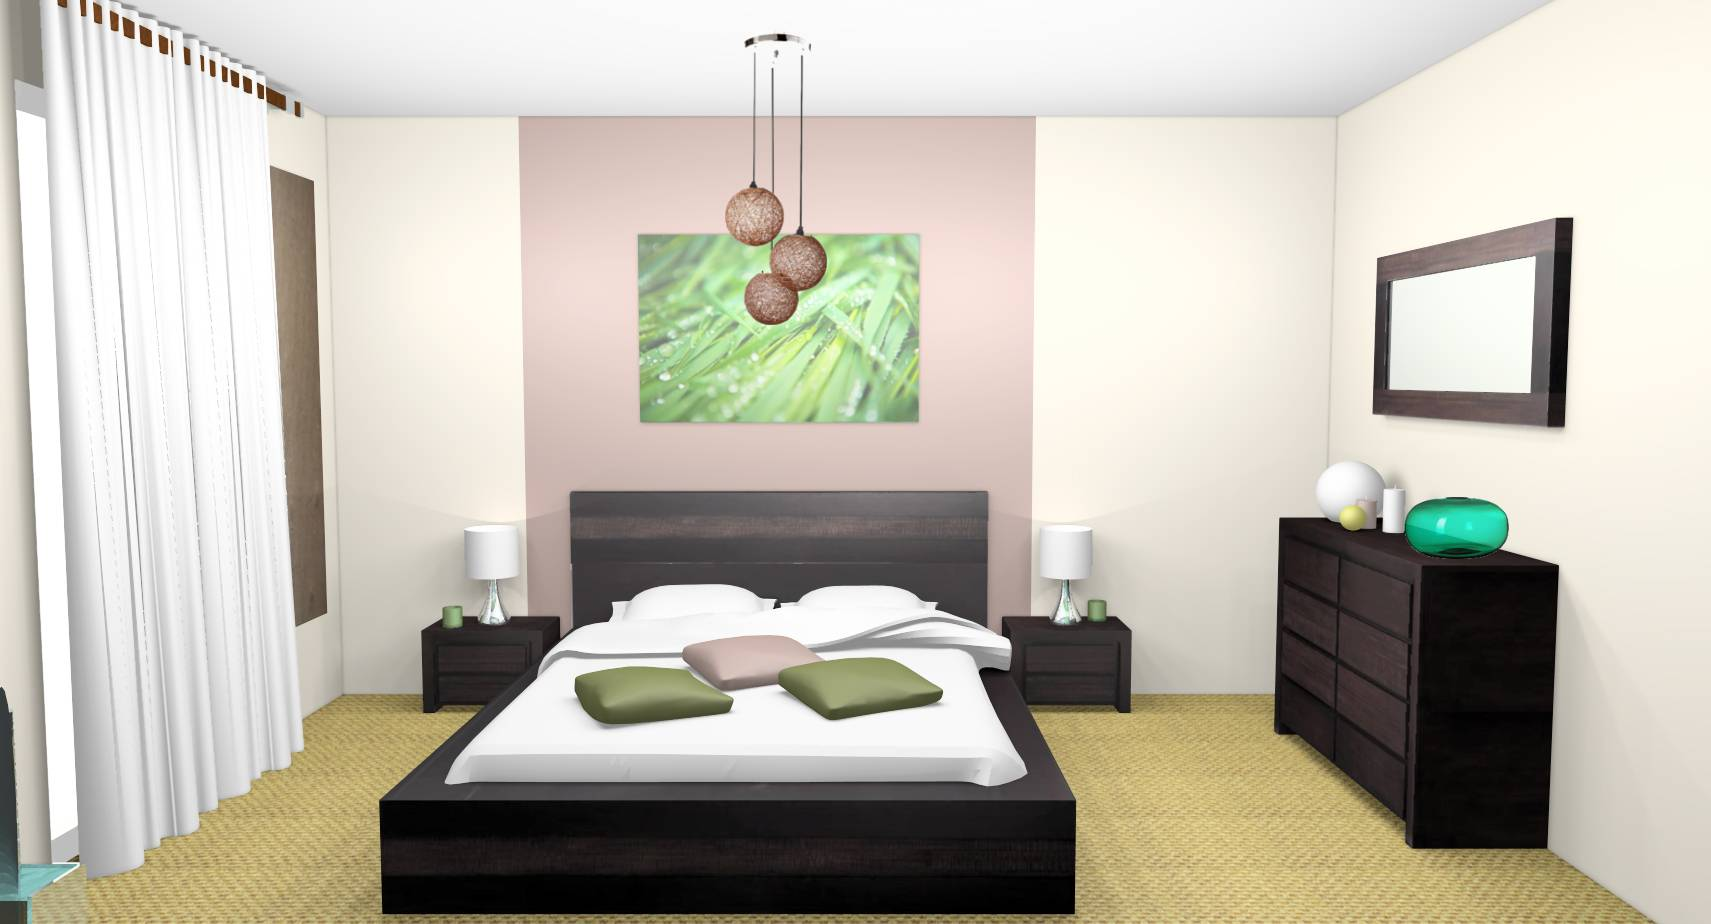 D coration chambre adulte zen for Decoration interieur chambre adulte